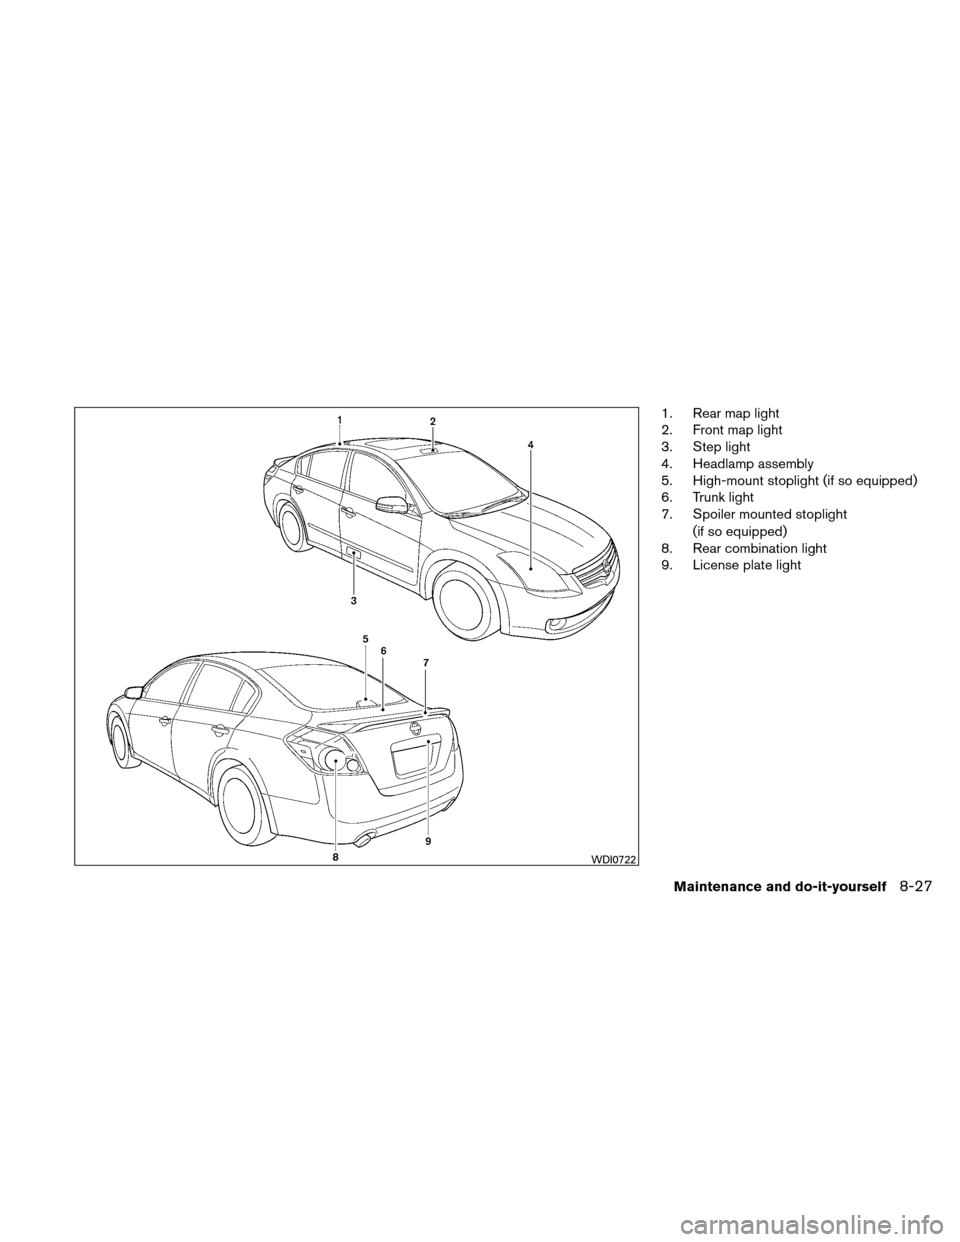 NISSAN ALTIMA HYBRID 2011 L32A / 4.G Owners Manual, Page 368